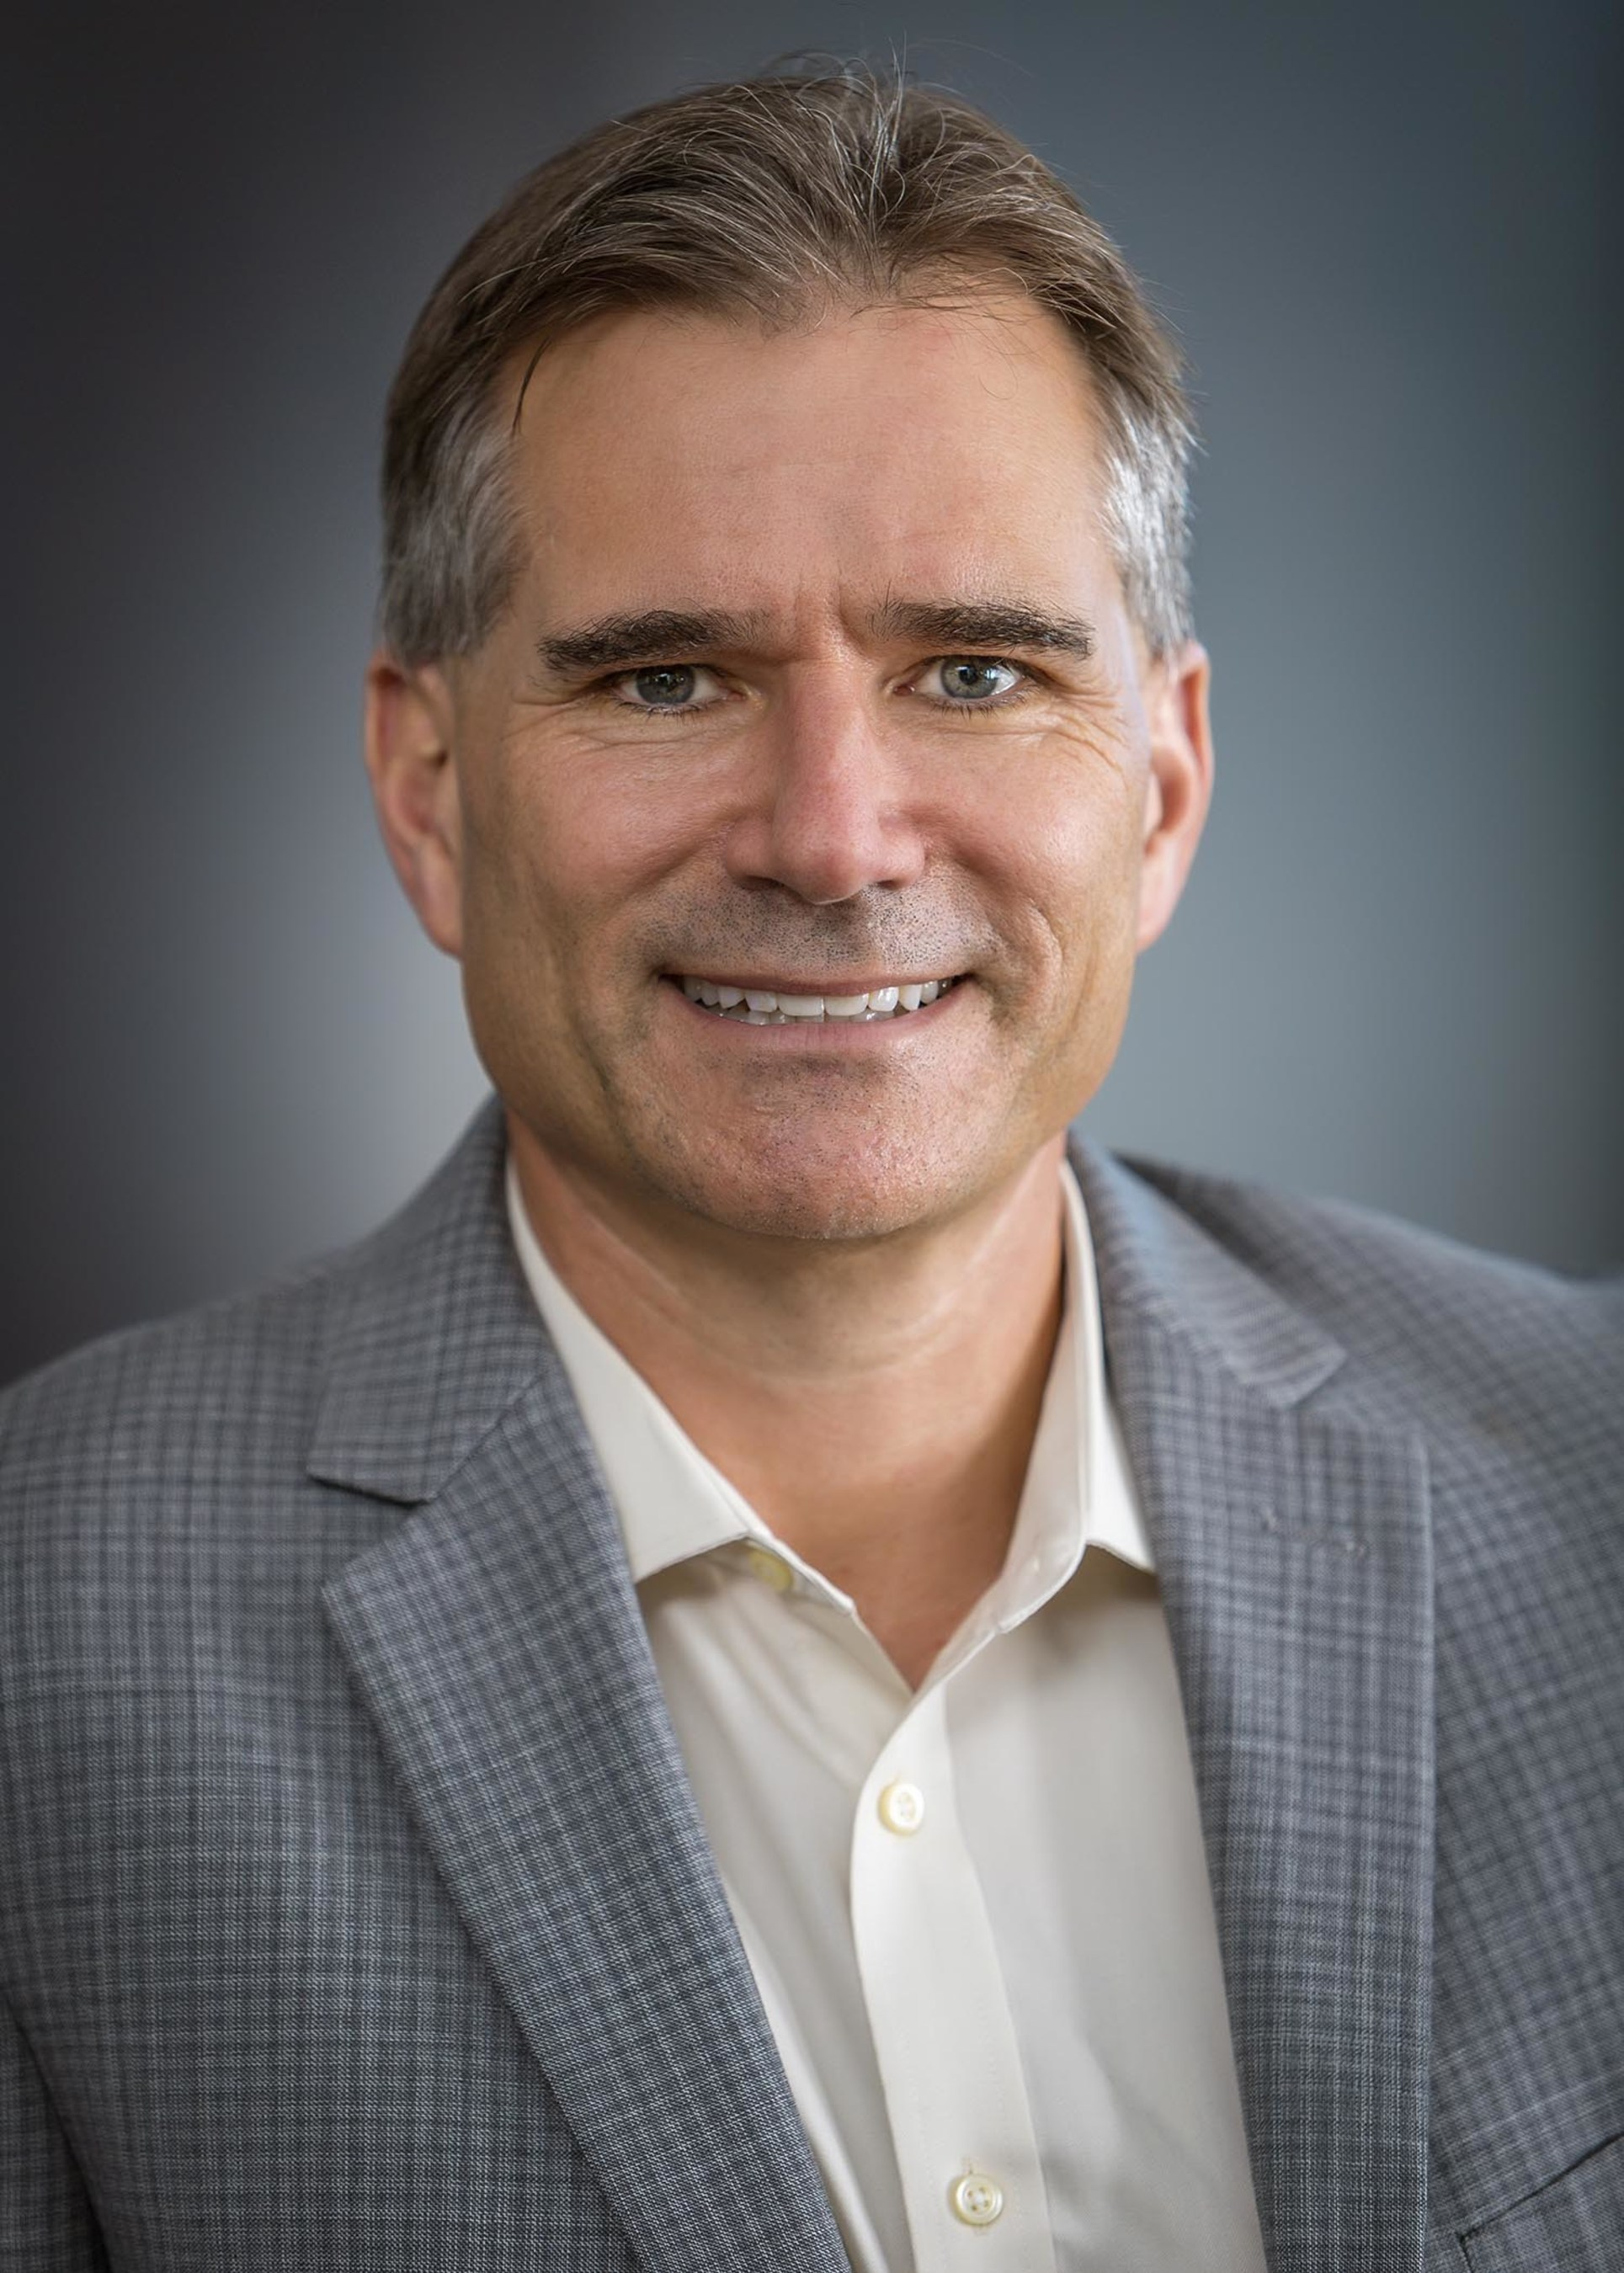 Scott A. Snyder, Ph.D. Senior Vice President, Managing Director, and Chief Technology and Innovation Officer Safeguard Scientifics, Inc.